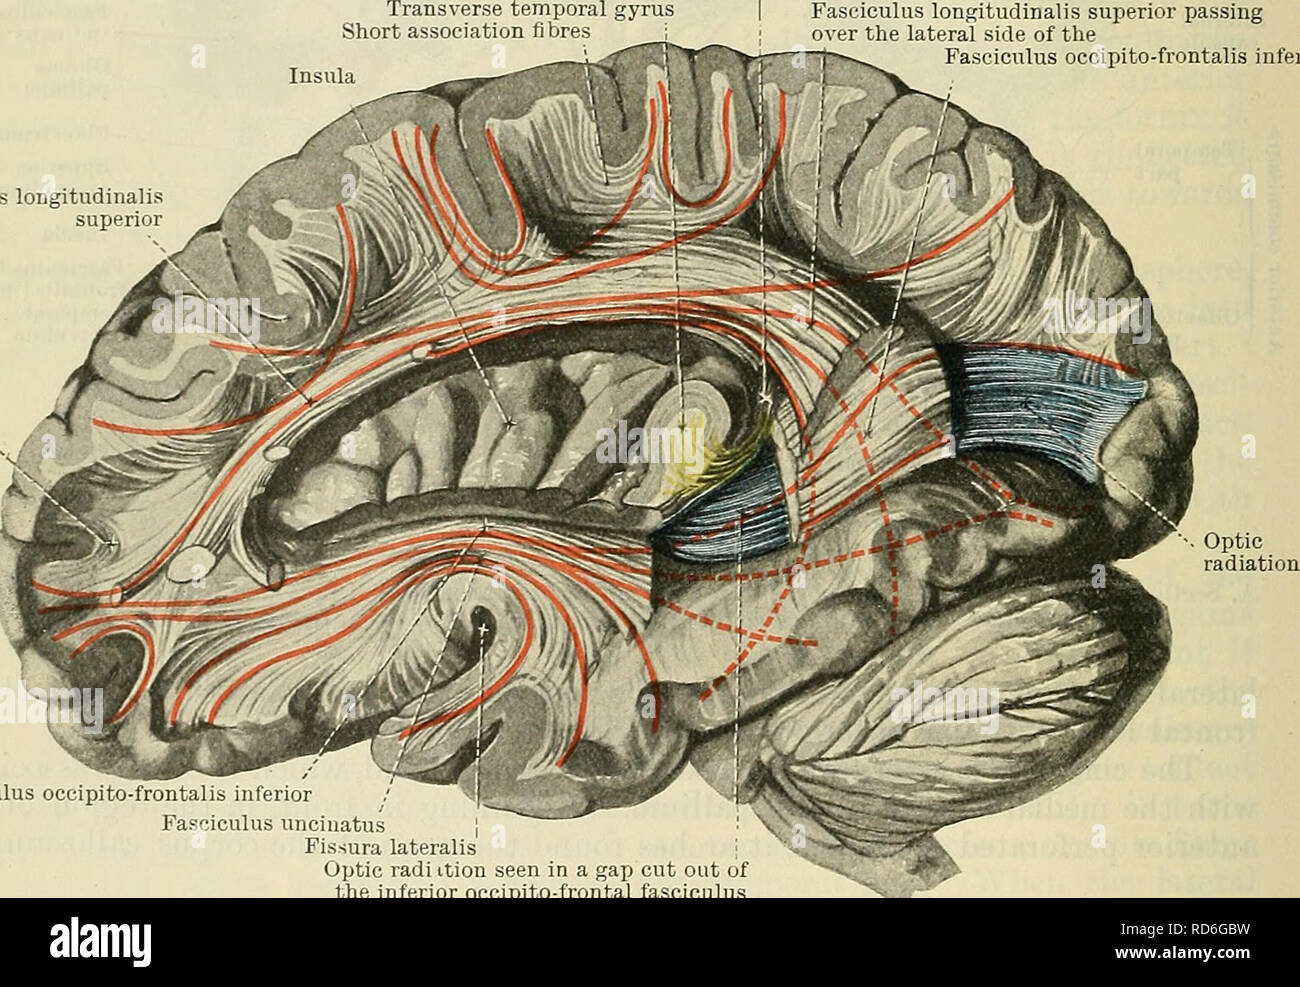 . Cunningham's Text-book of anatomy. Anatomy. 650 THE NEEVOUS SYSTEM. the hinpocanipal gyrus, to the uncus and the temporal pole. The cinguluni is composed of several systems of fibres which run only for short distances within it. The fasciculus longitudinalis superior is an arcuate bundle which is placed on the lateral aspect of the foot or basal part of the corona radiata and connects the frontal, occipital, and temporal regions of the hemisphere. It lies in the base of the superior operculum and sweeps backwards over the insular region to the posterior end of the lateral cerebral fissure. H Stock Photo